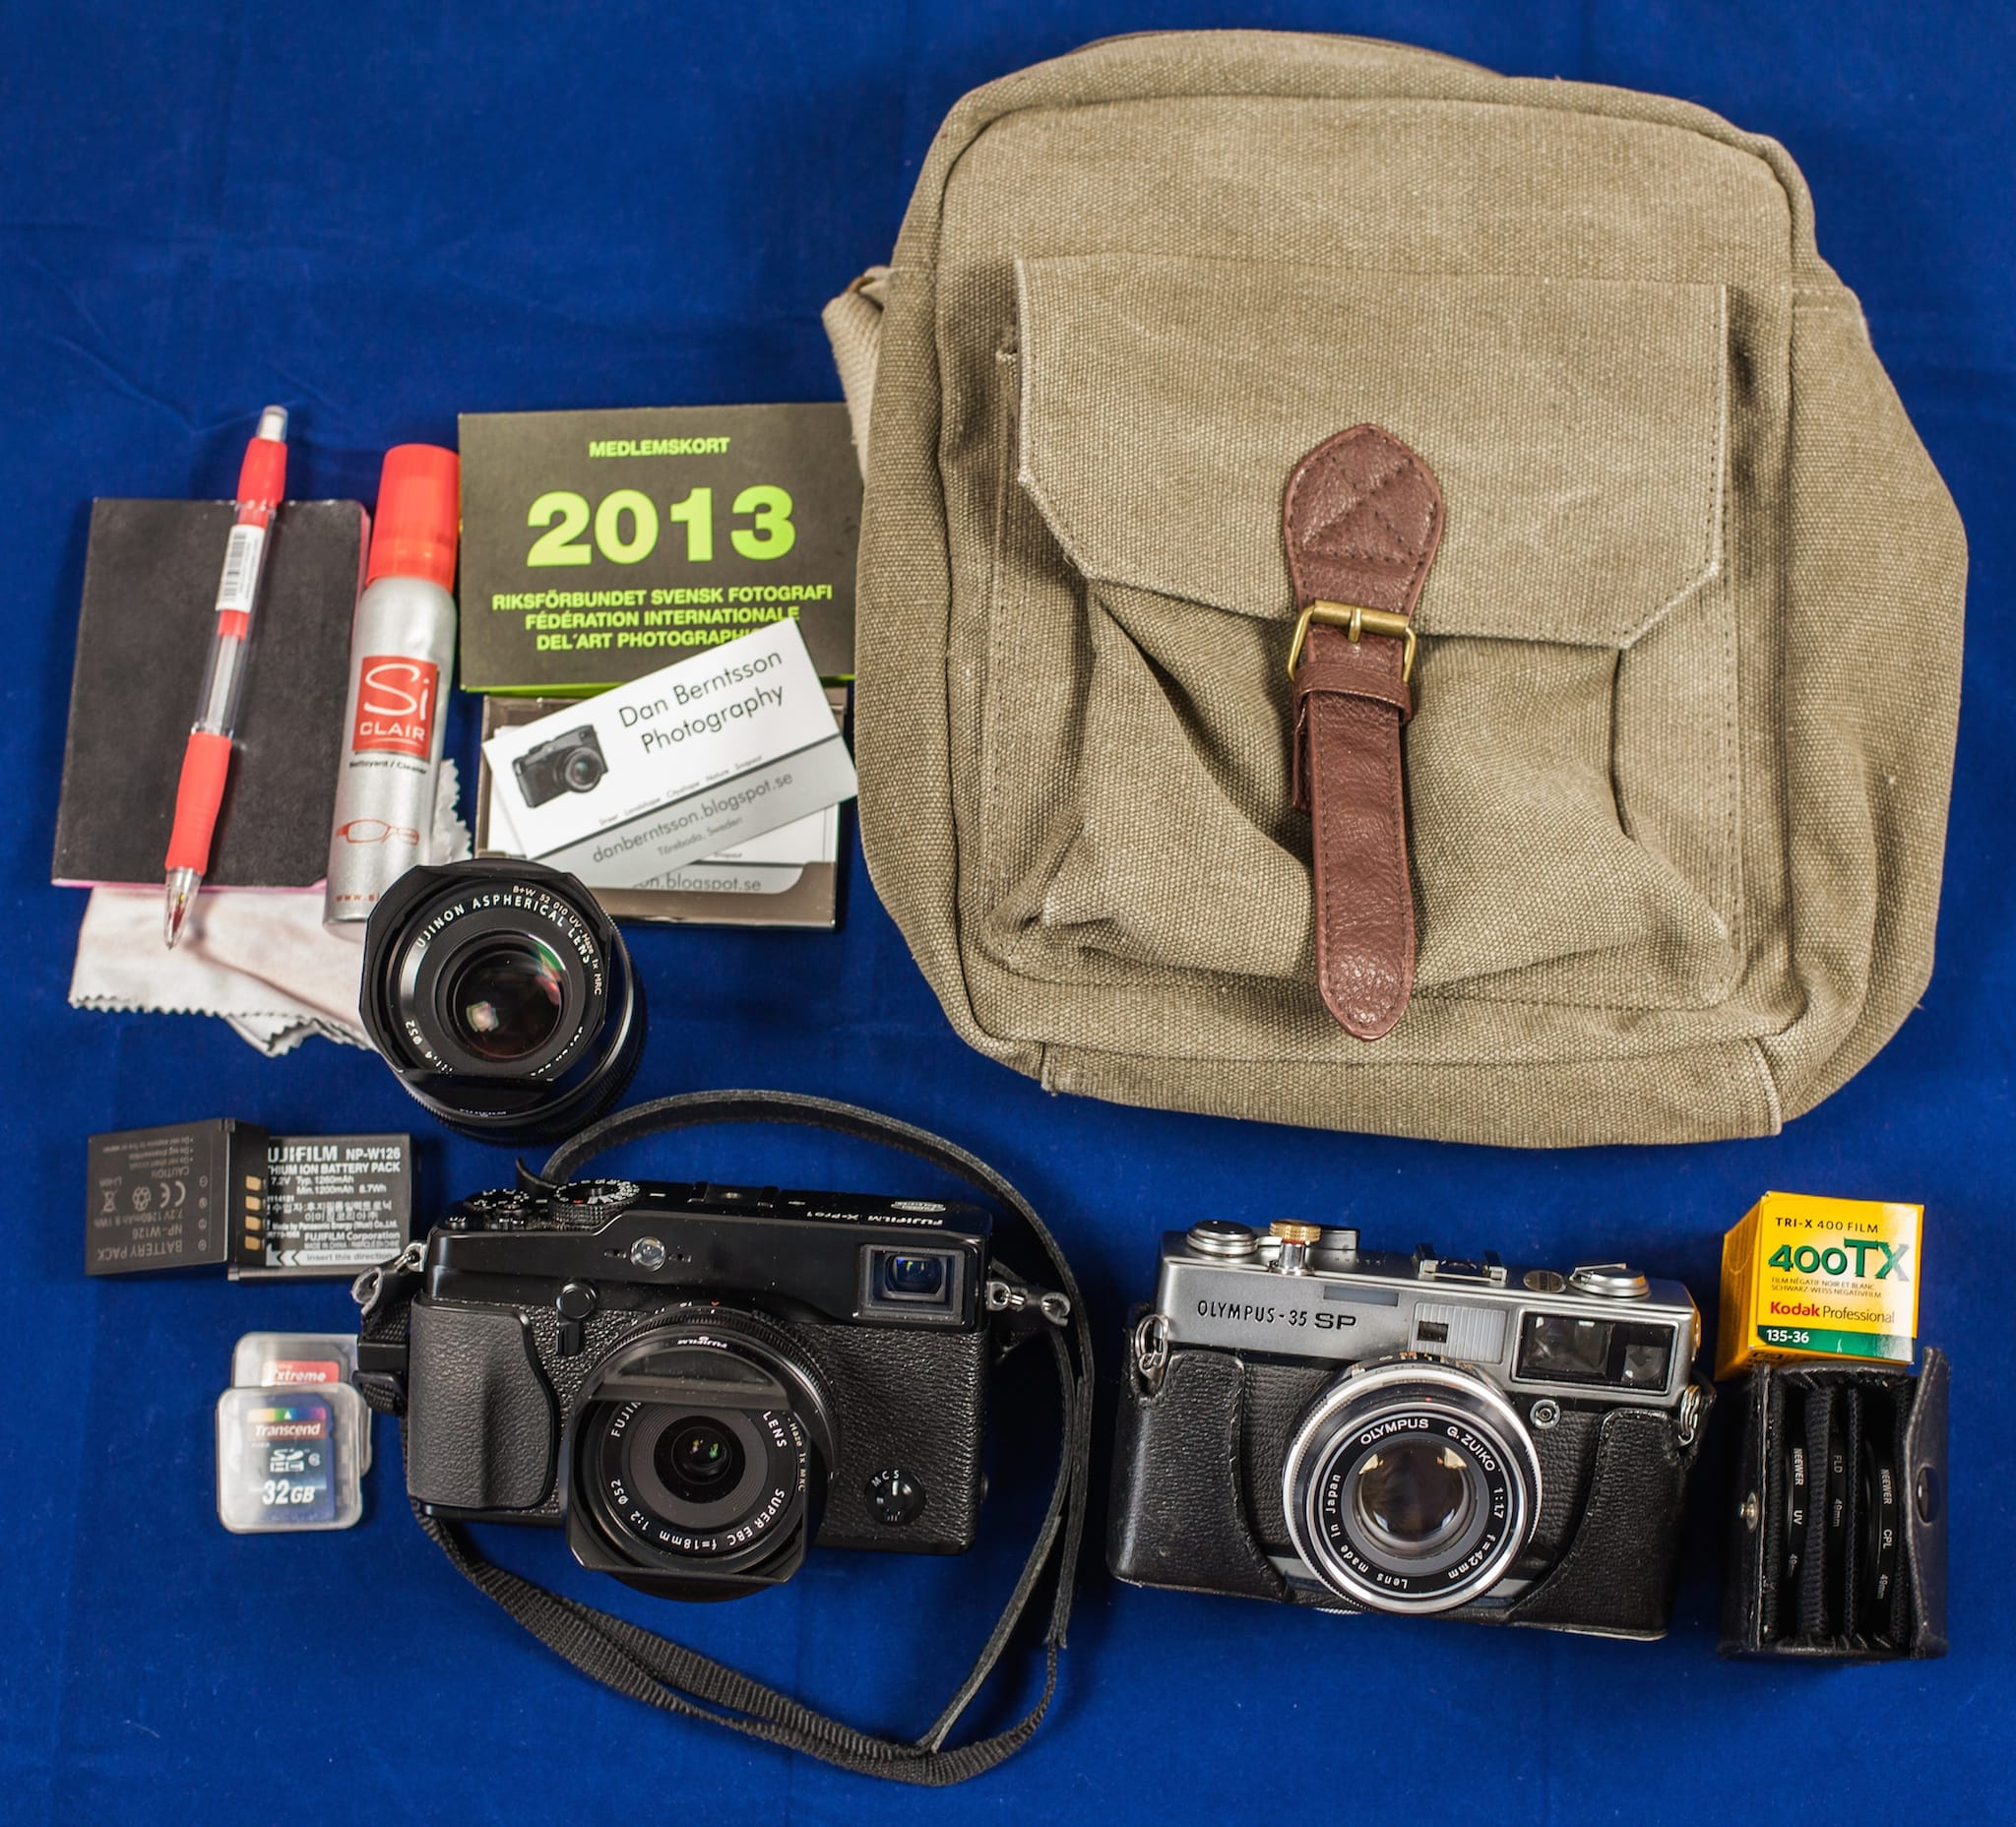 Dan Berntsson's Camera Bag